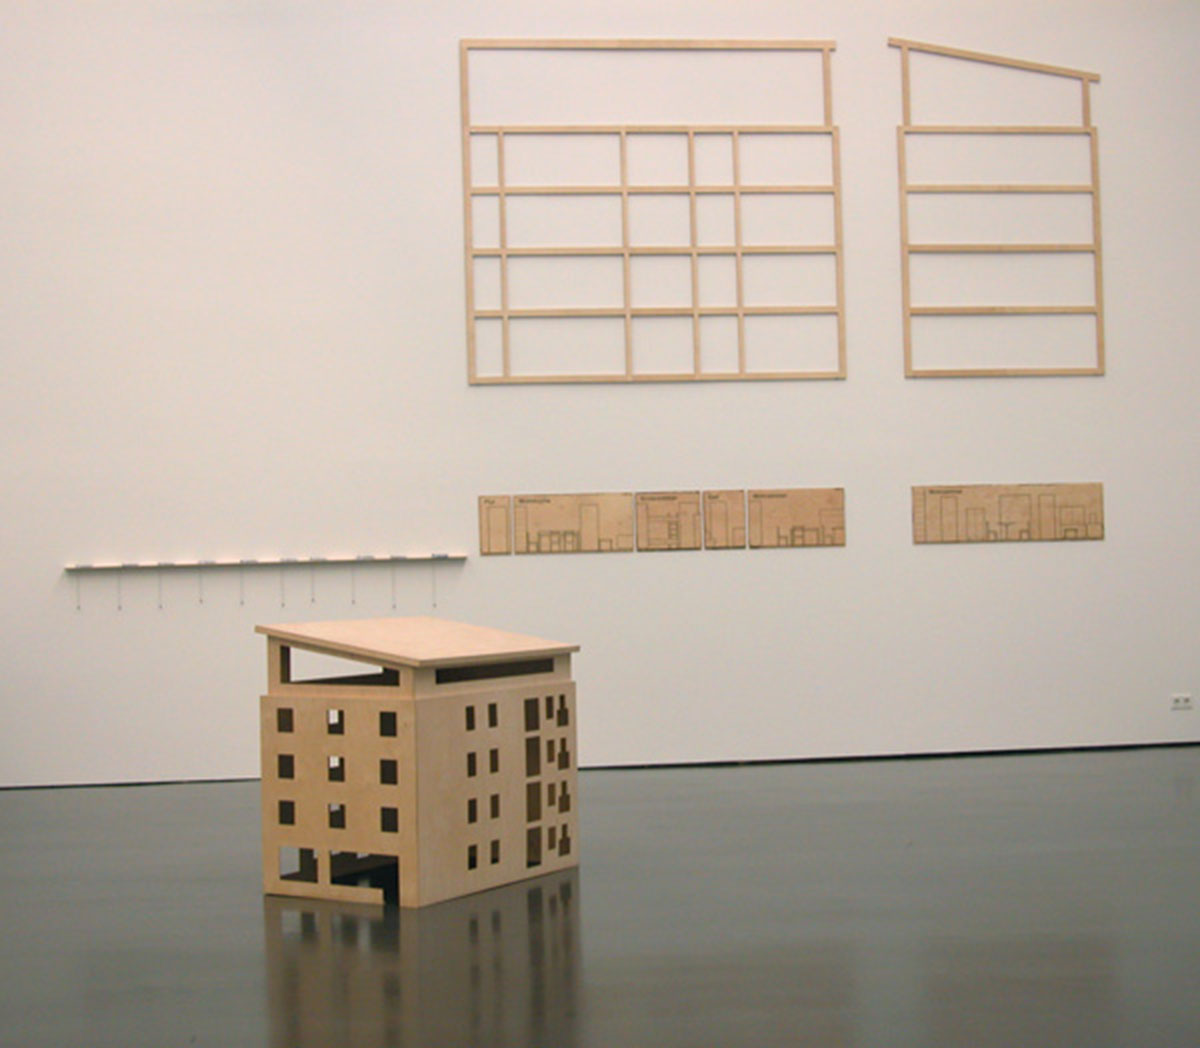 The Mustermann Family - Trauma of an Unattached Artist, © 2001 - 2003, Model, 1:20, sections and structures, 1:10, 4 - 15 mm plywood